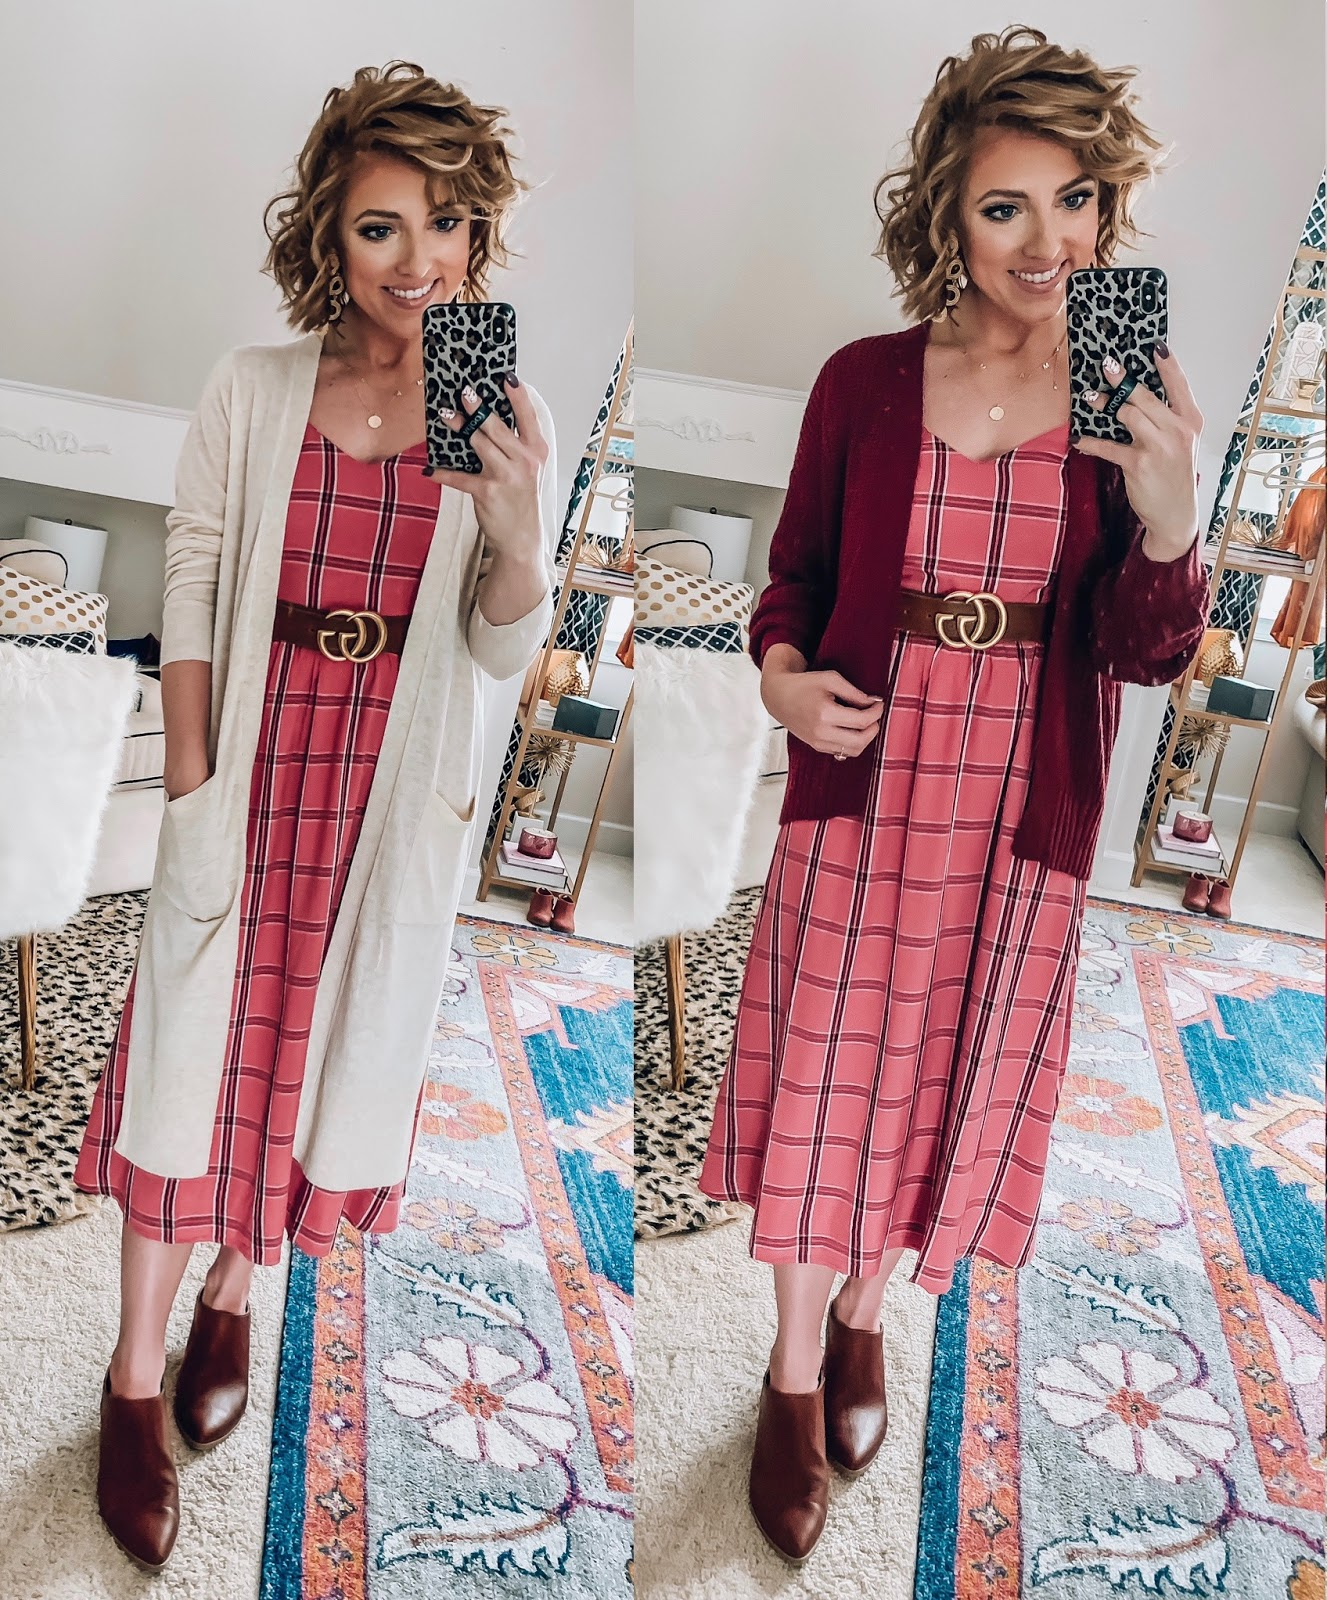 Old Navy Pink & Burgundy Plaid Midi Dress styled Four Ways  - Somethig Delightful Blog #affordablefashion